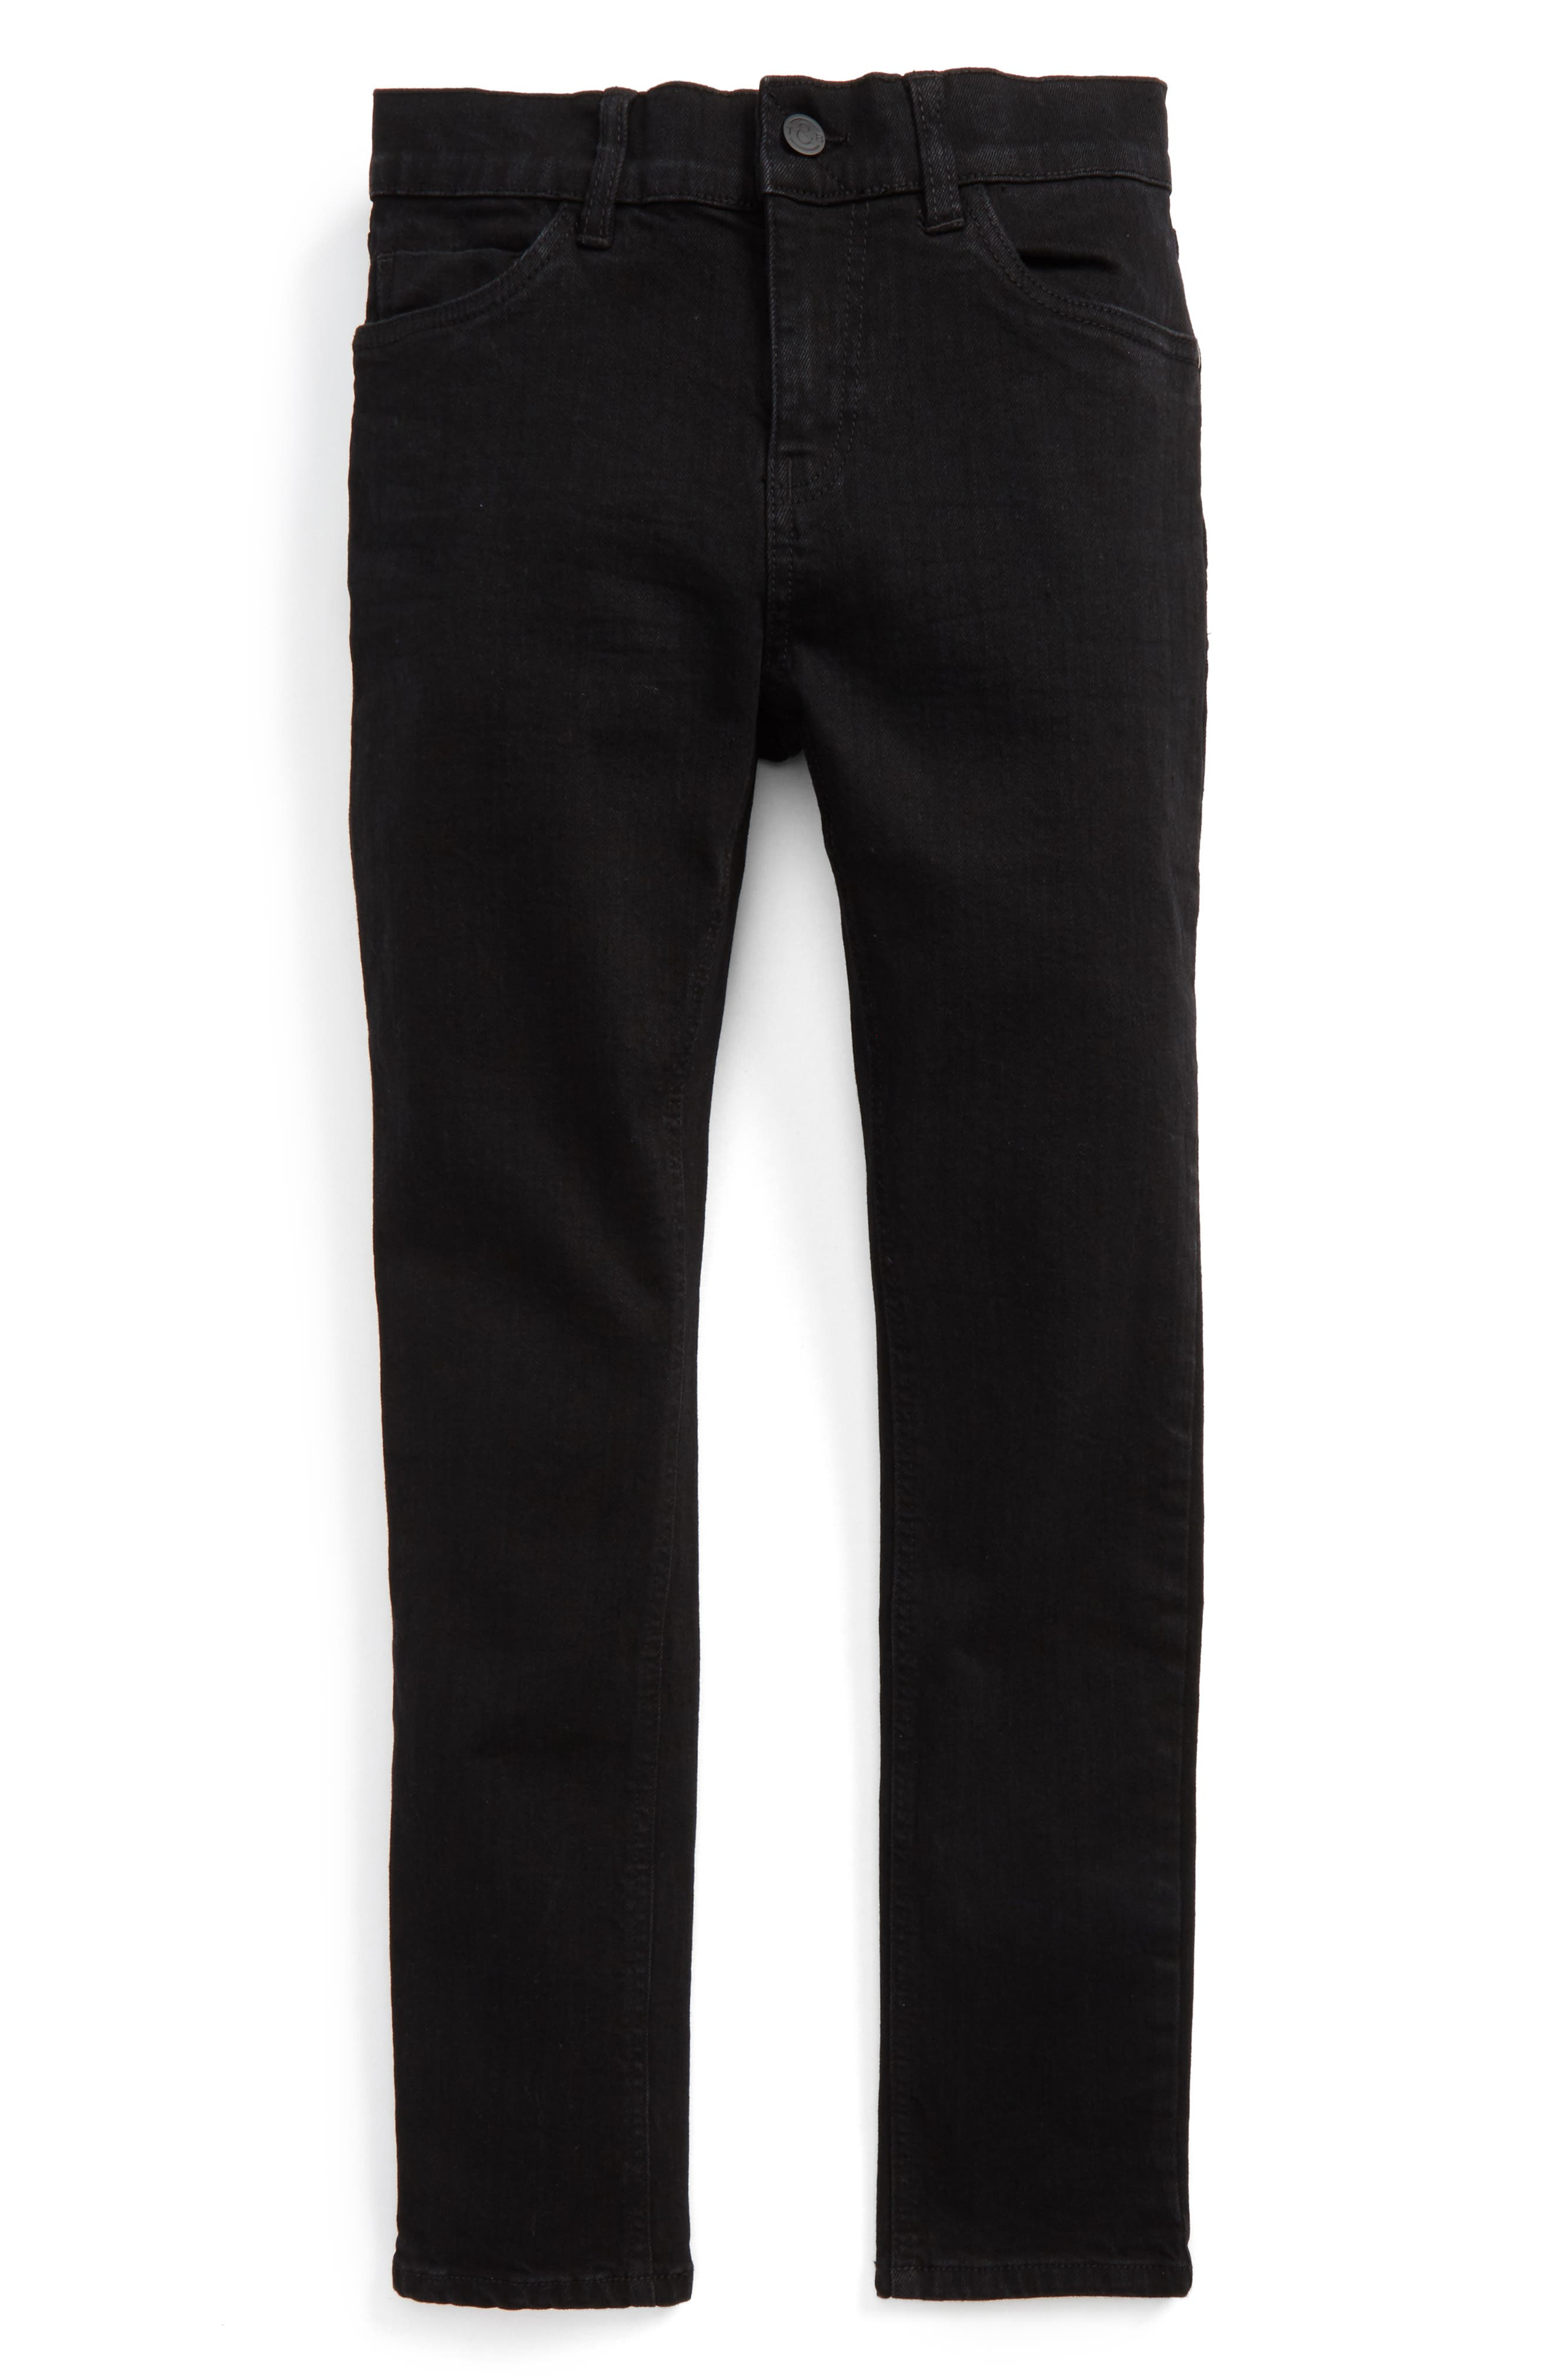 Slouch Skinny Jeans,                             Main thumbnail 1, color,                             001